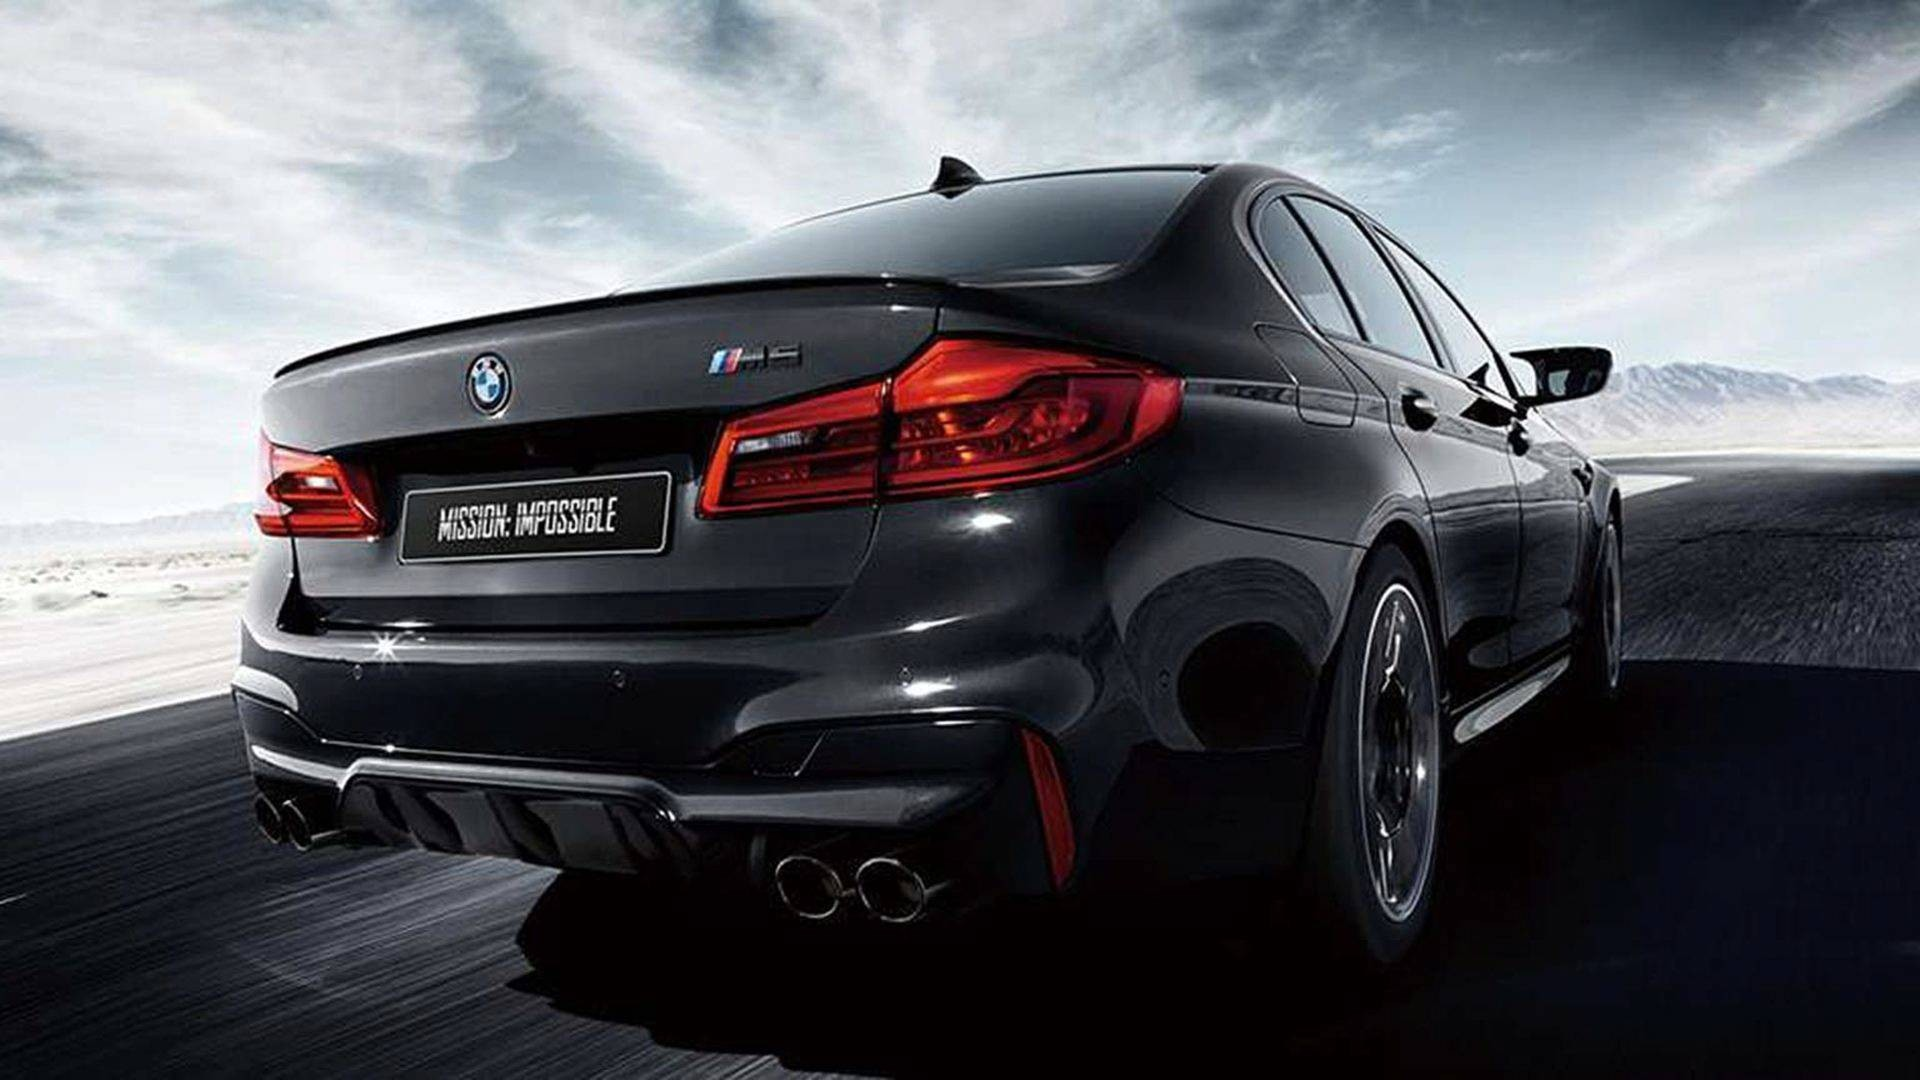 bmw-5-series-m5-mission-impossible-edition-2